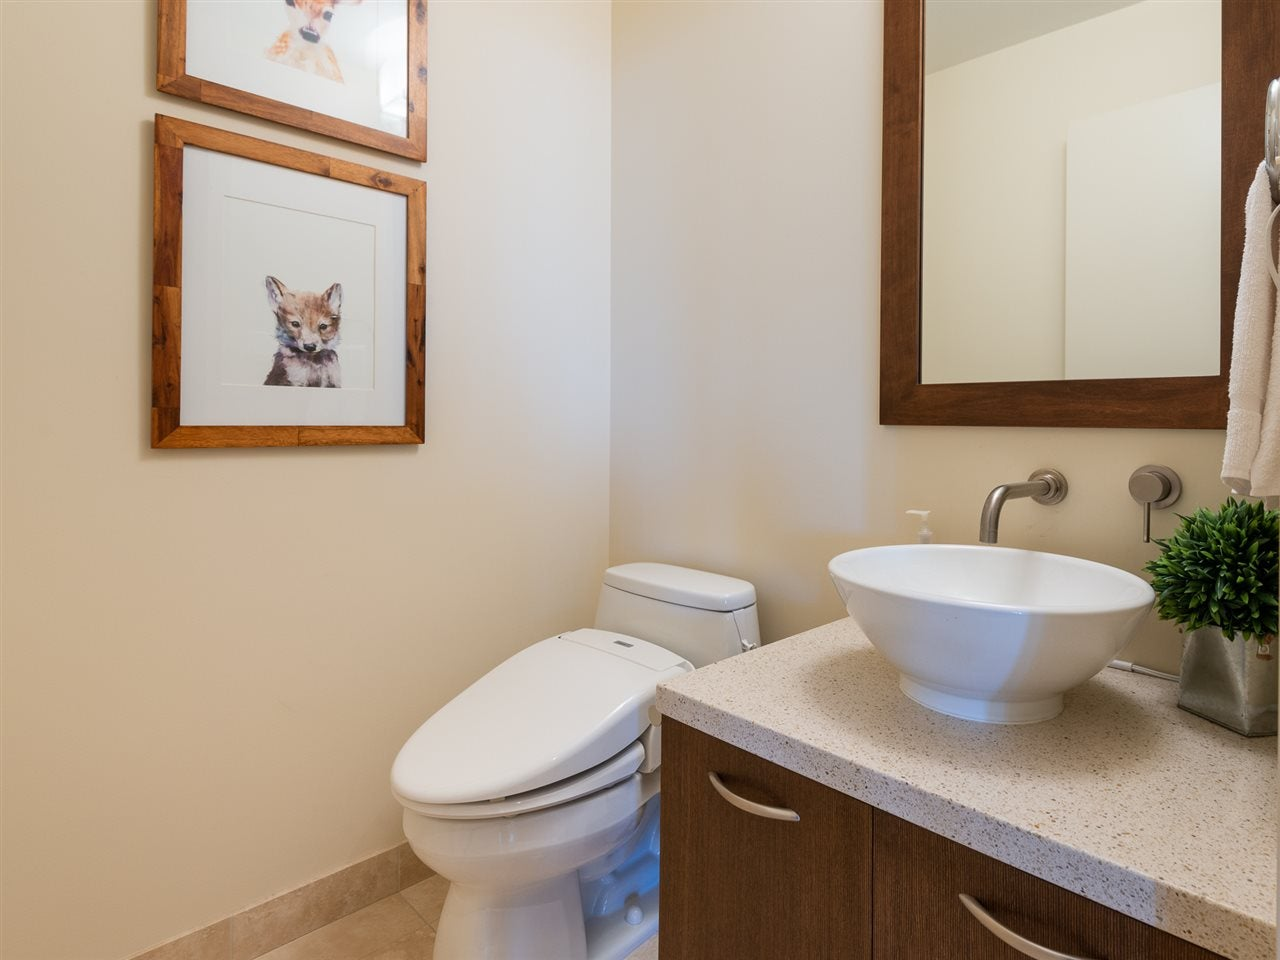 501 3335 CYPRESS PLACE - Cypress Park Estates Apartment/Condo for sale, 2 Bedrooms (R2528186) - #20